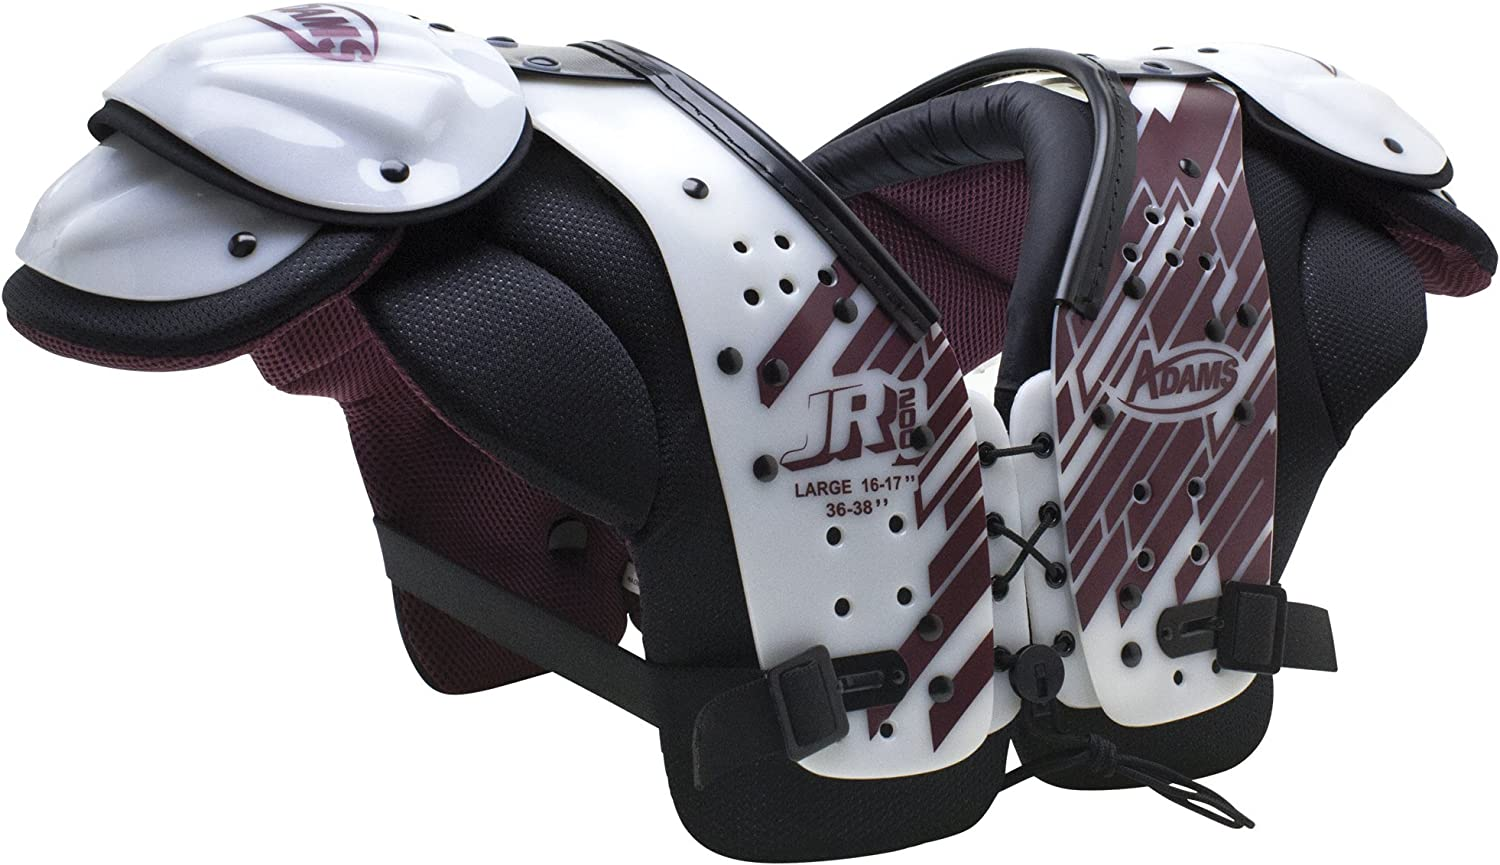 Adams USA JR200 Youth All Purpose Football Shoulder Pads : Sports & Outdoors